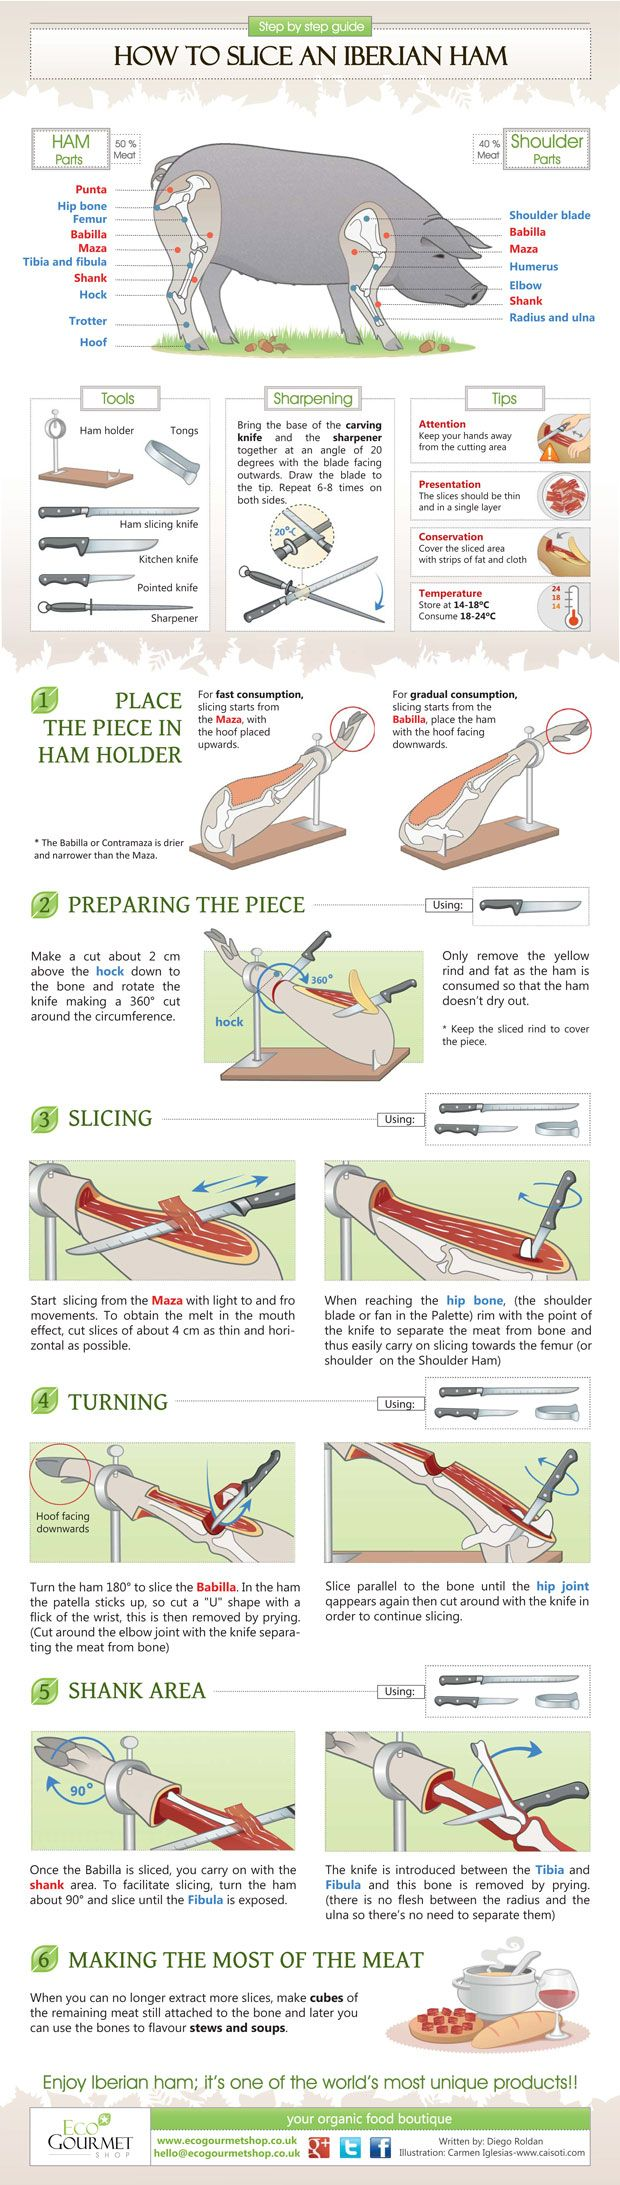 How to cut a Iberian Ham. Step by step guide